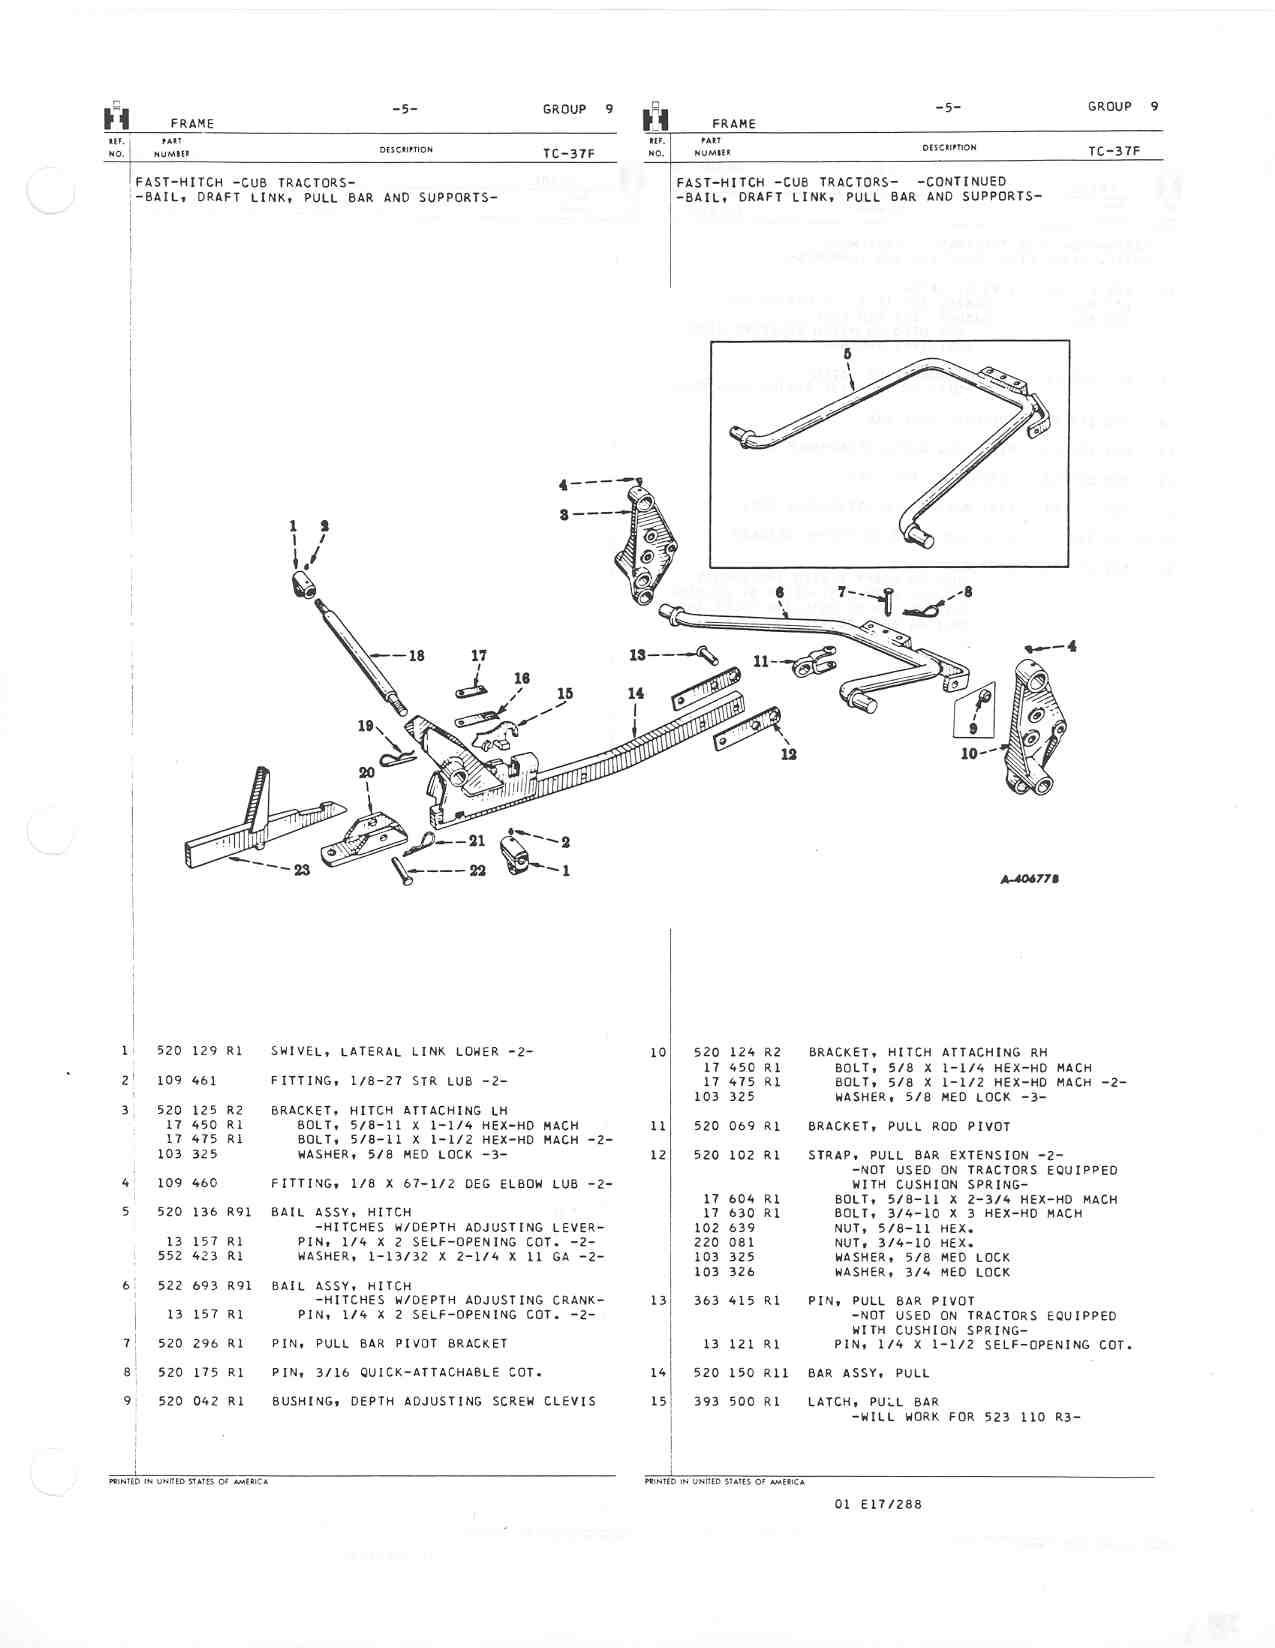 Super Ford Escape Trailer Wiring Diagram Dreamdiving Farmall Cub Harness Routing Furthermore Moreover Likewise Acchio Ferrera Italy 01 Also Additionally Monkey Tablet In Addition B0entyq Wk Kgrhqyoknuew89opvz3bmyvgwu